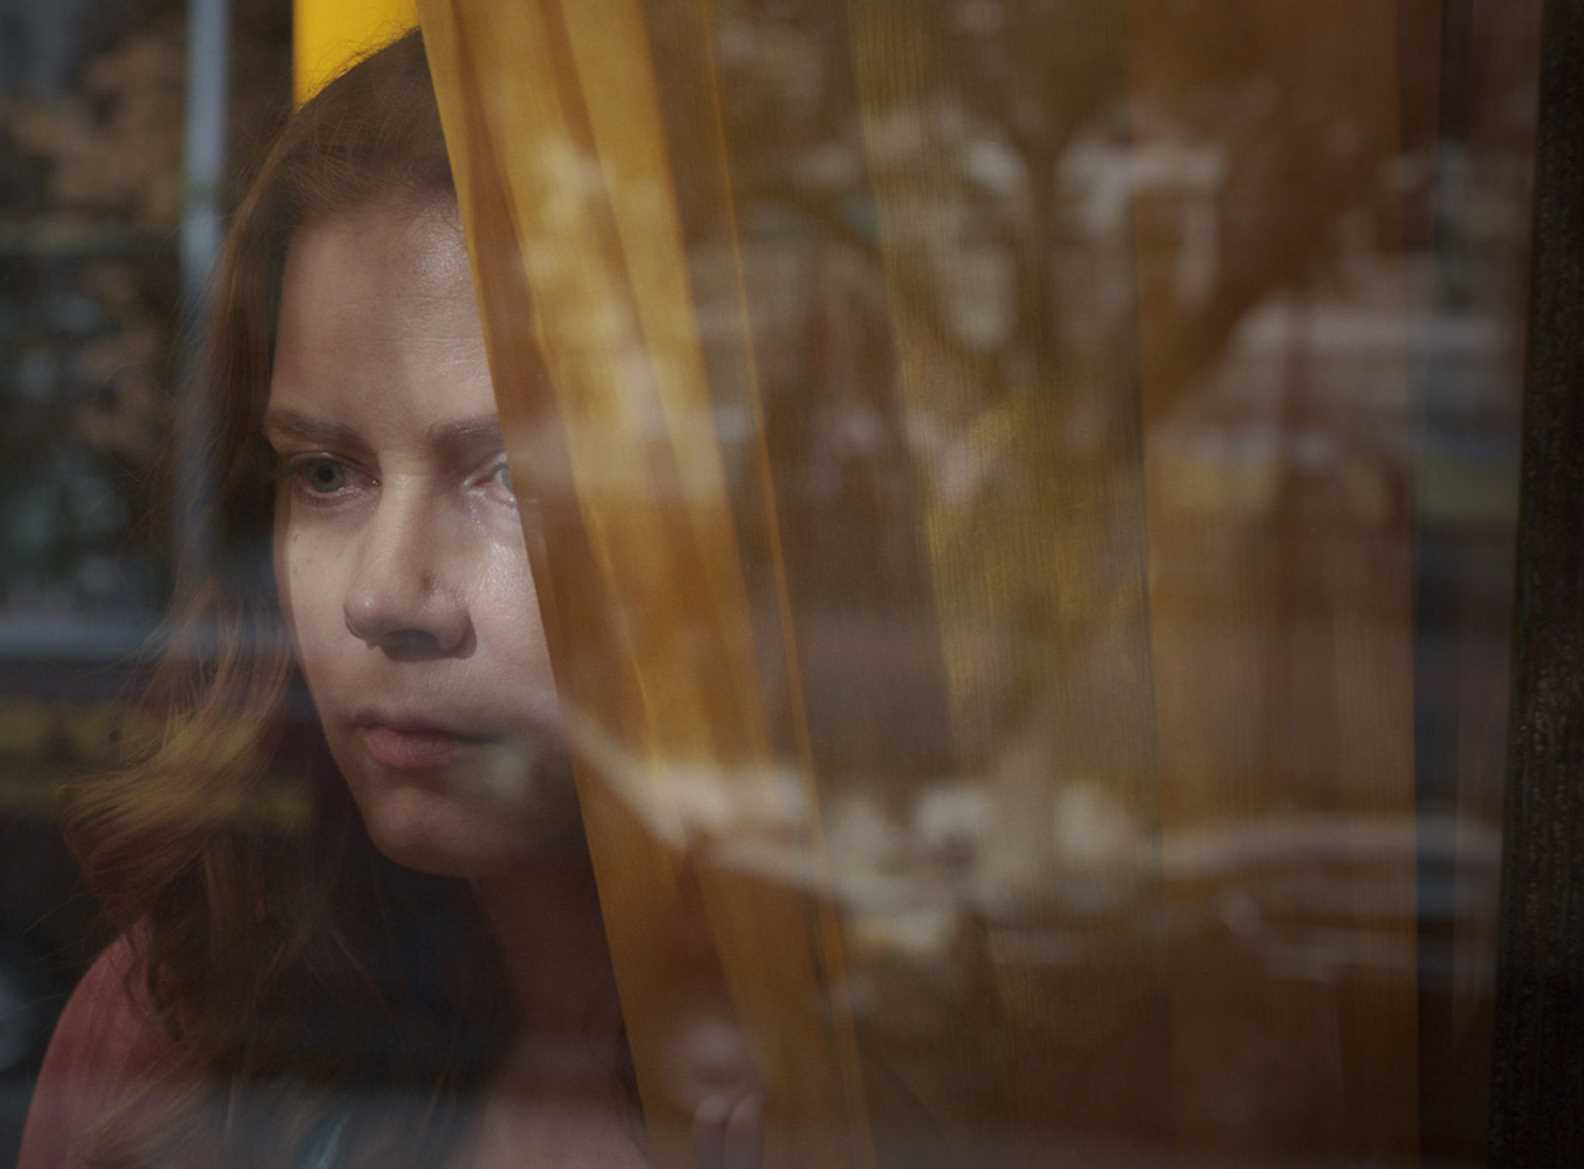 Watch The Woman in the Window at Vue Cinema | Book Tickets Online